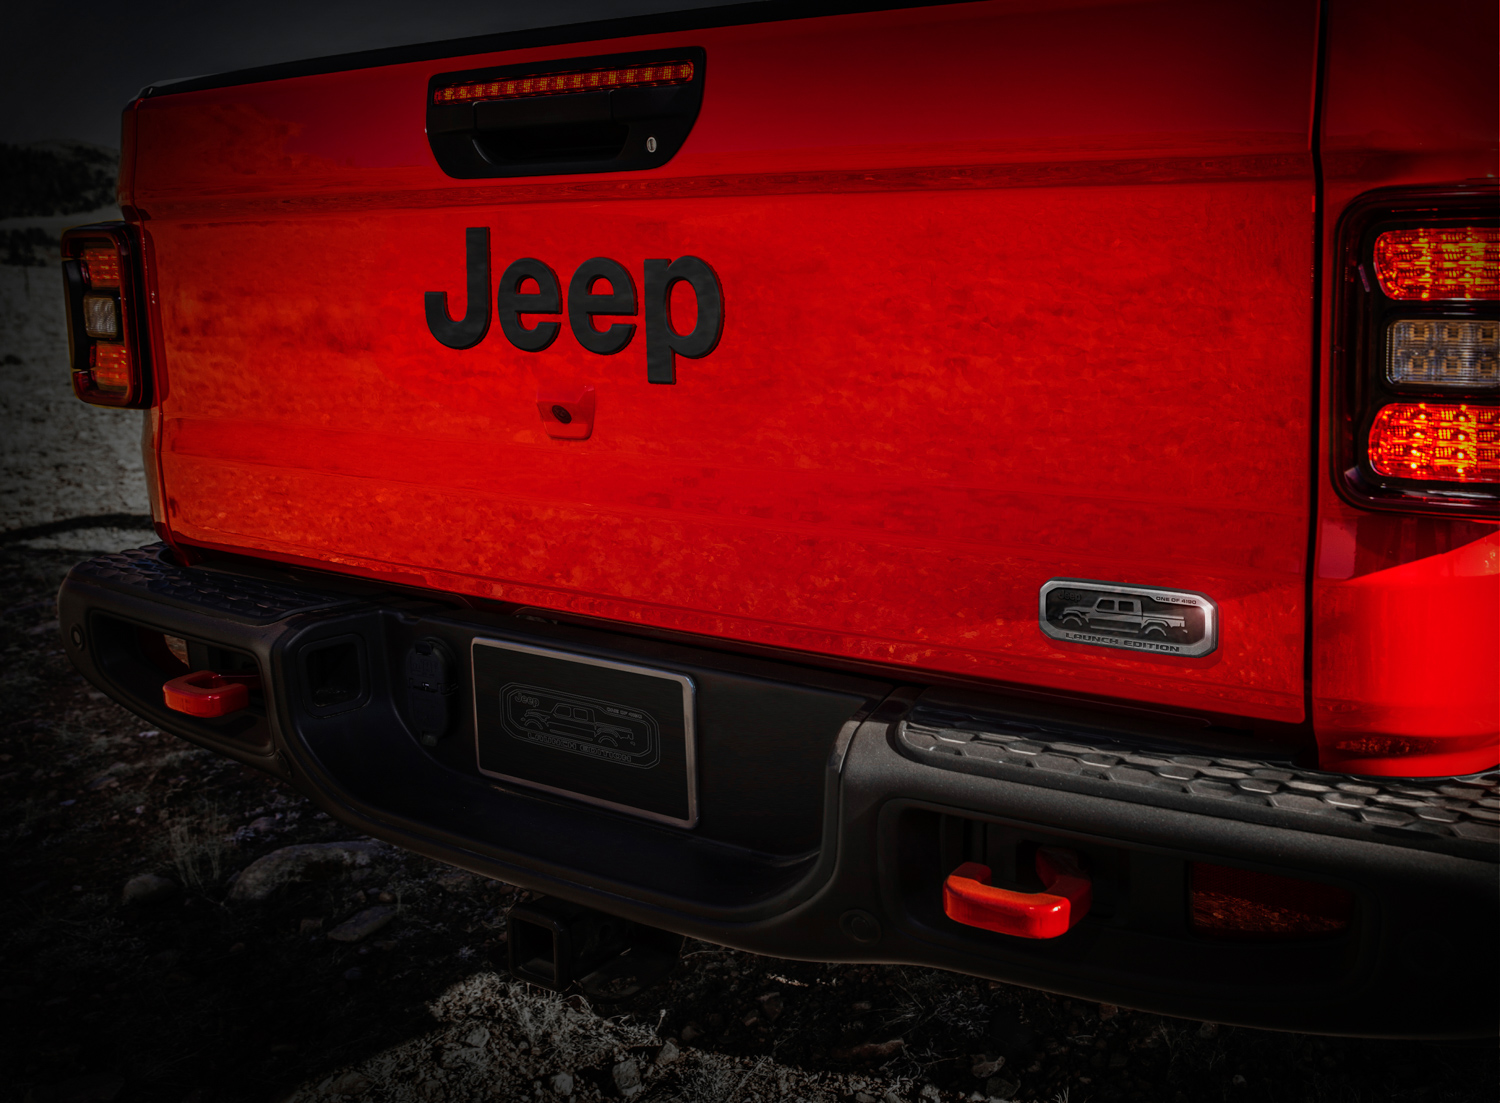 2020 Jeep Gladiator Launch Edition tailgate